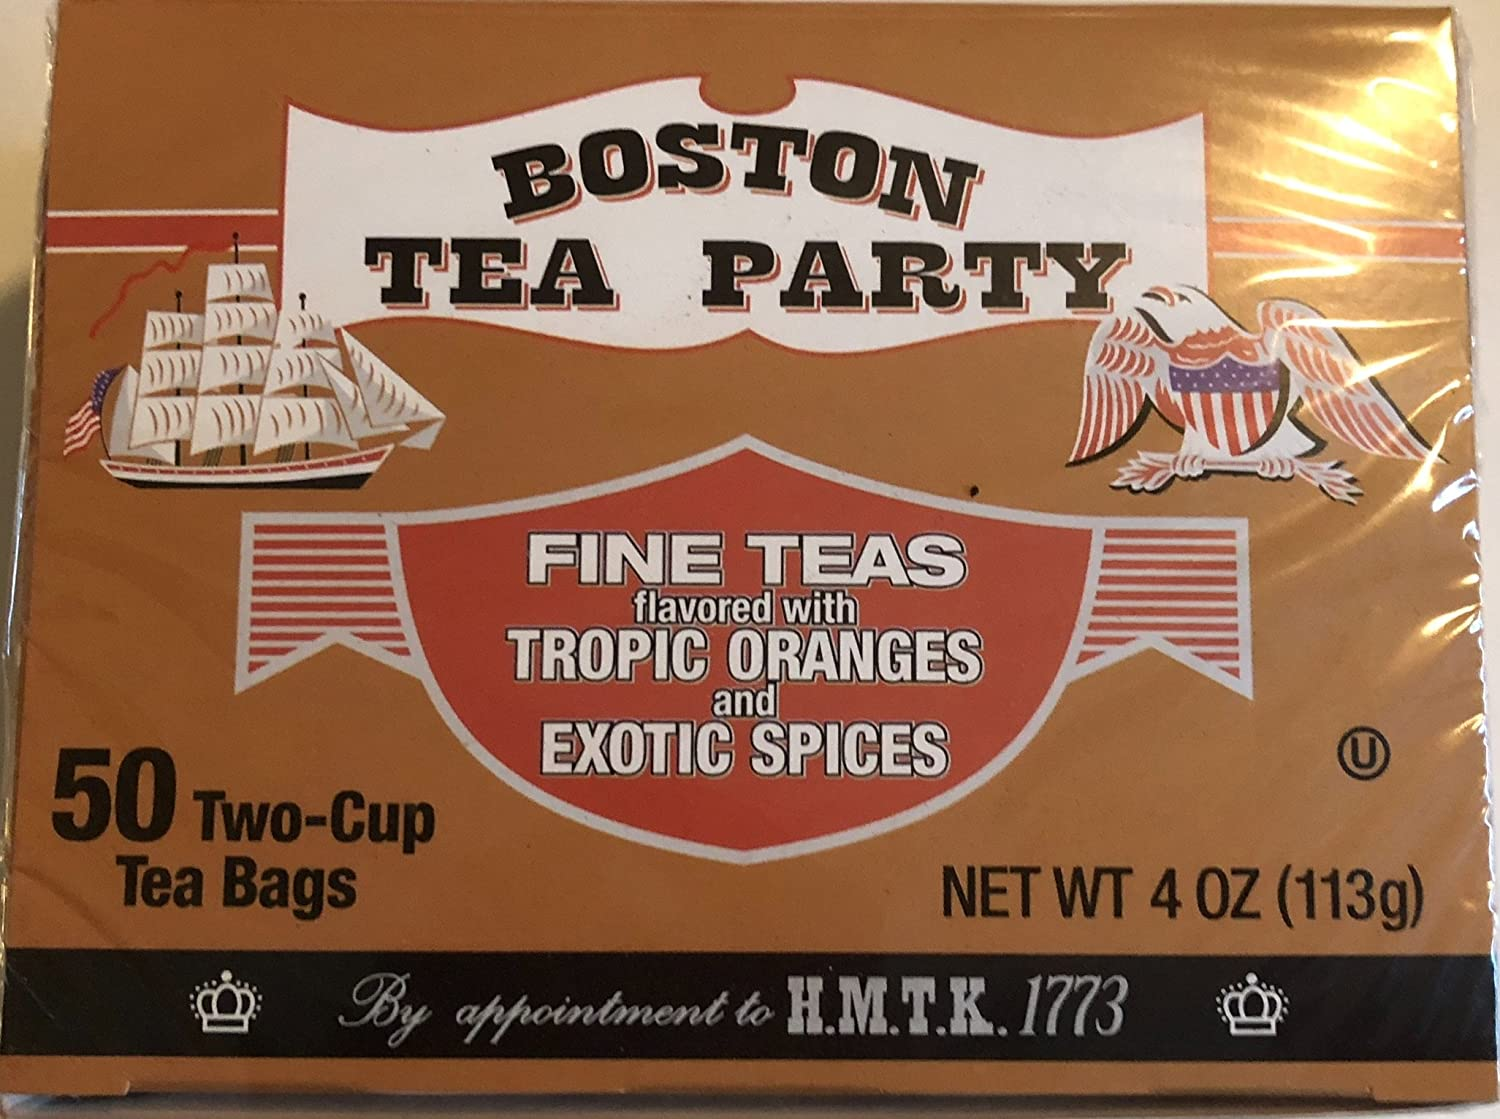 Boston Tea Party 50 count High material Manufacturer regenerated product - 6pk bags tea box